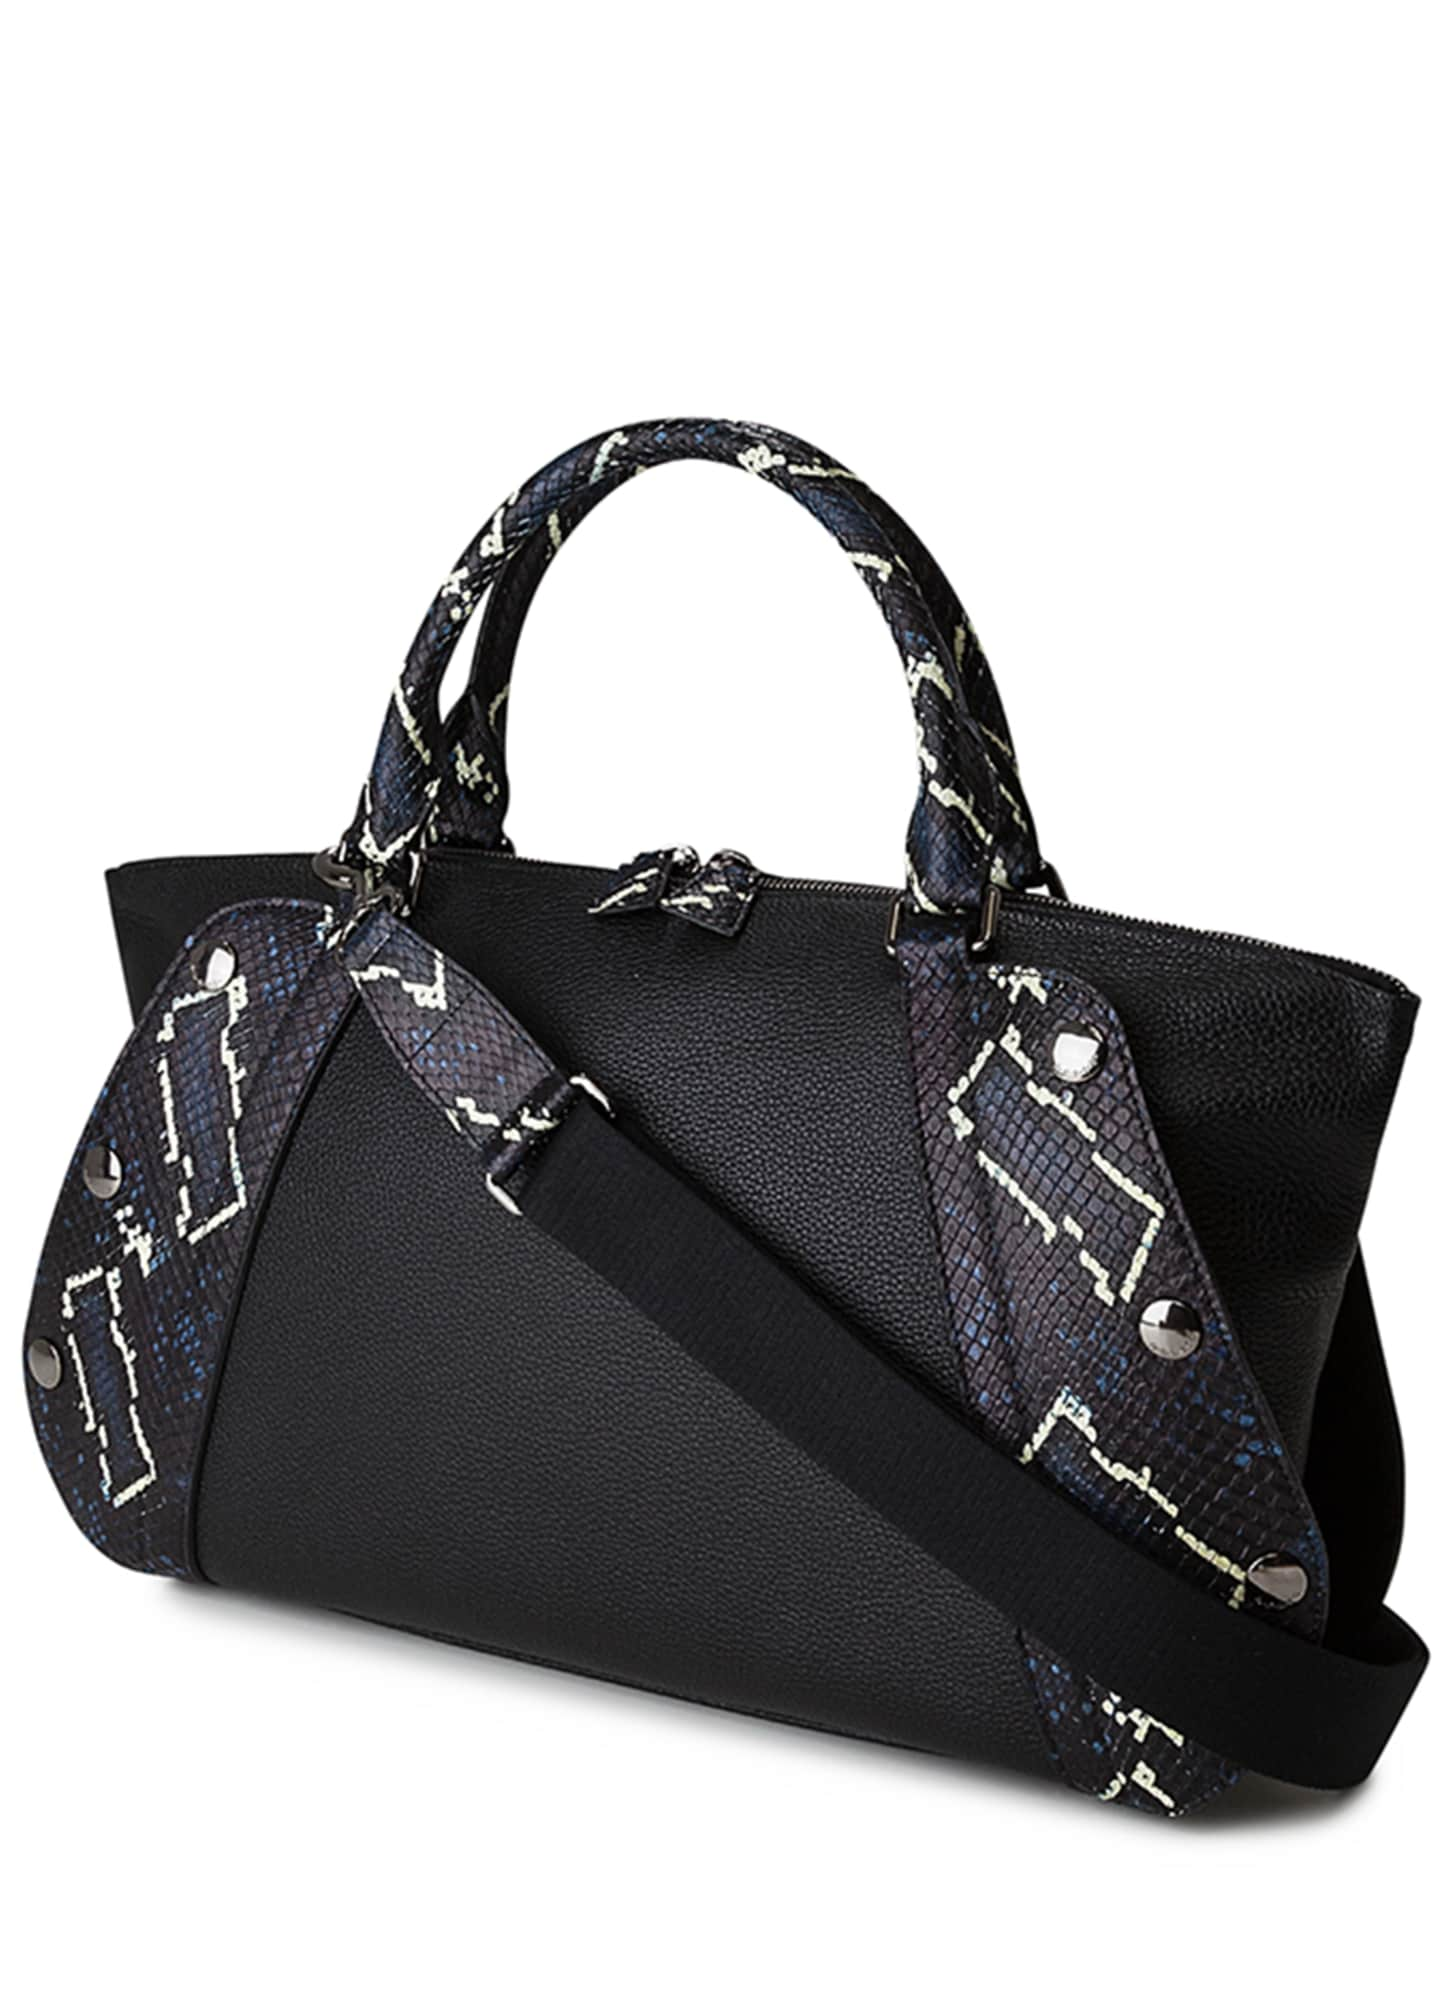 Image 3 of 4: Aimee Small Convertible Leather/Python Satchel Bag